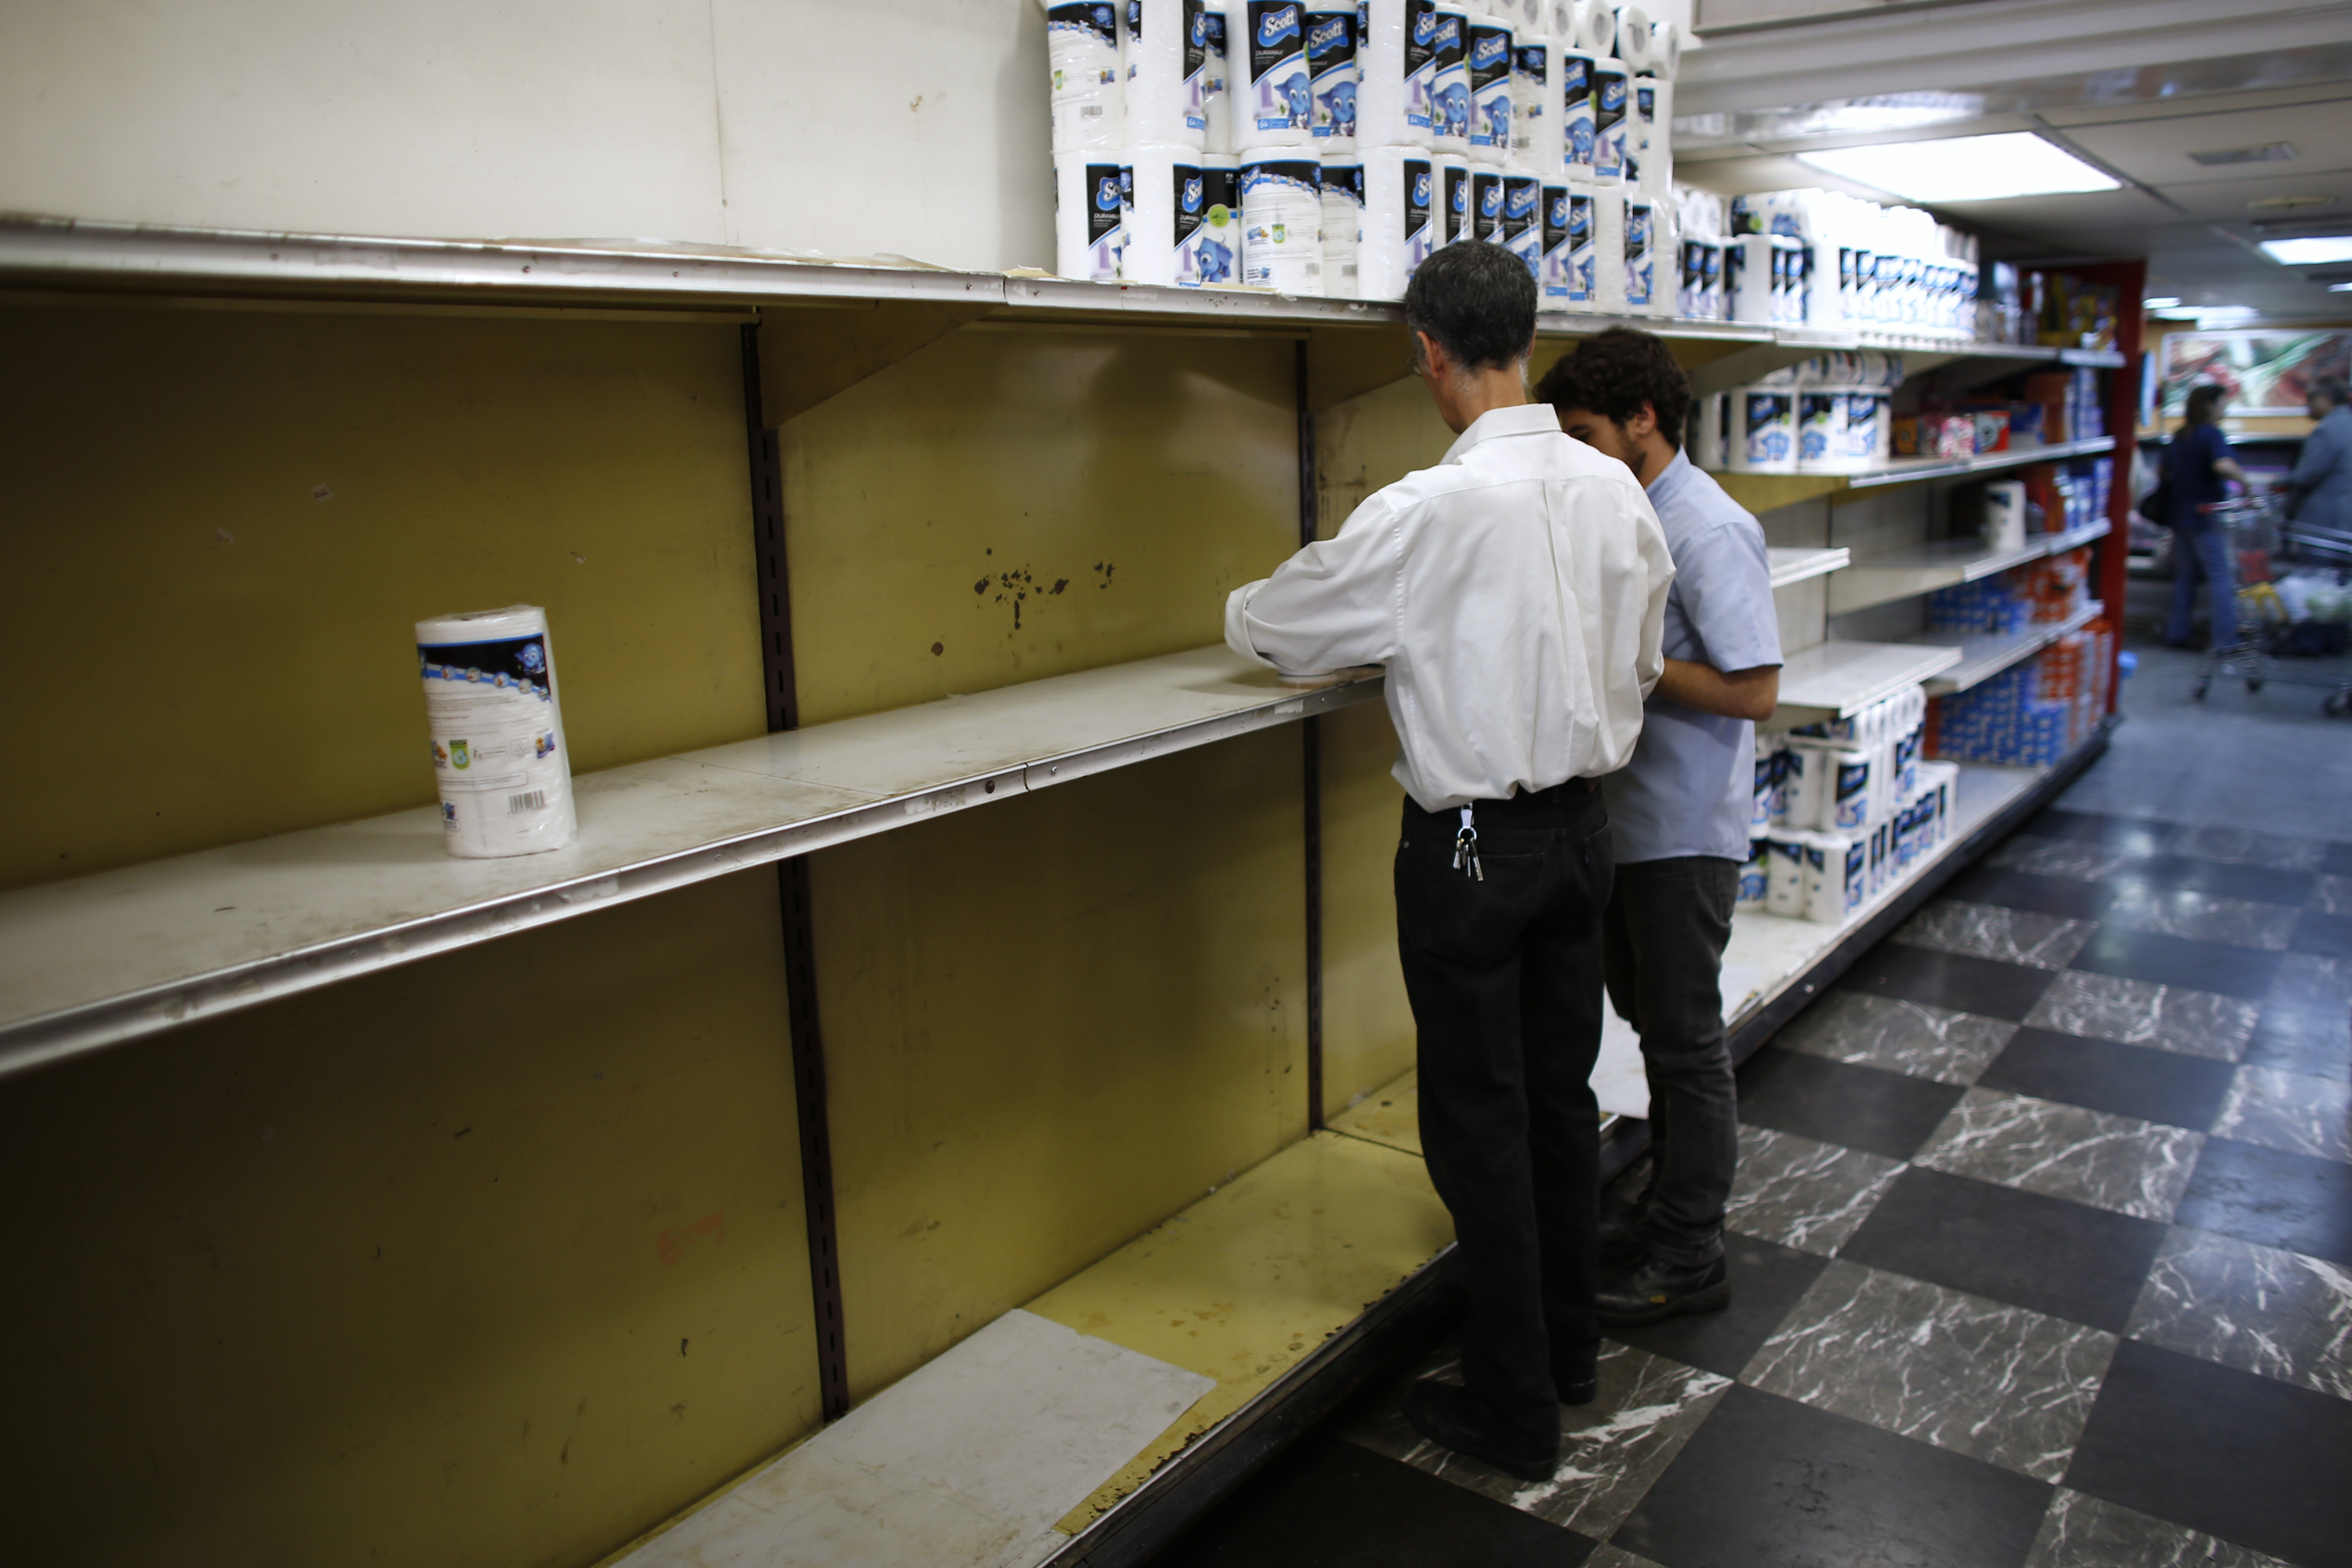 "Supermarket staff work next to partially empty shelves of toilet paper in Caracas May 16, 2013. Supplies of food and other basic products have been patchy in recent months, with long queues forming at supermarkets and rushes occurring when there is news of a new stock arrival. The situation has spawned jokes among Venezuelans, particularly over the lack of toilet paper. The government announced this week it was importing 50 million rolls to compensate for ""over-demand due to nervous buying."" REUTERS/Jorge Silva (VENEZUELA - Tags: POLITICS BUSINESS) - RTXZPIP"